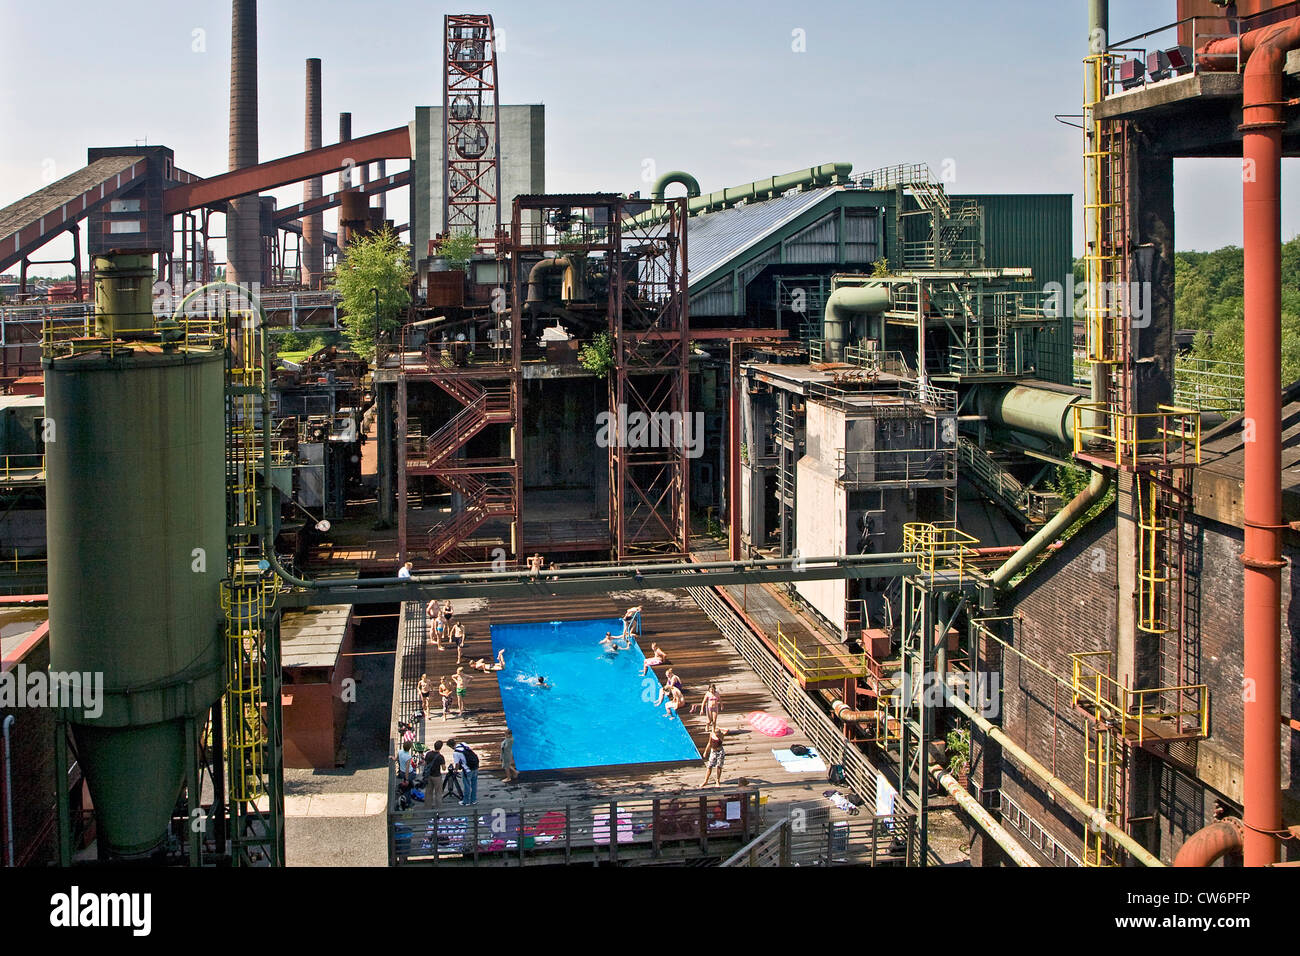 swimming pool at Kokerei Zollverein, Essen-Katernberg, Germany, North Rhine-Westphalia, Ruhr Area, Essen - Stock Image